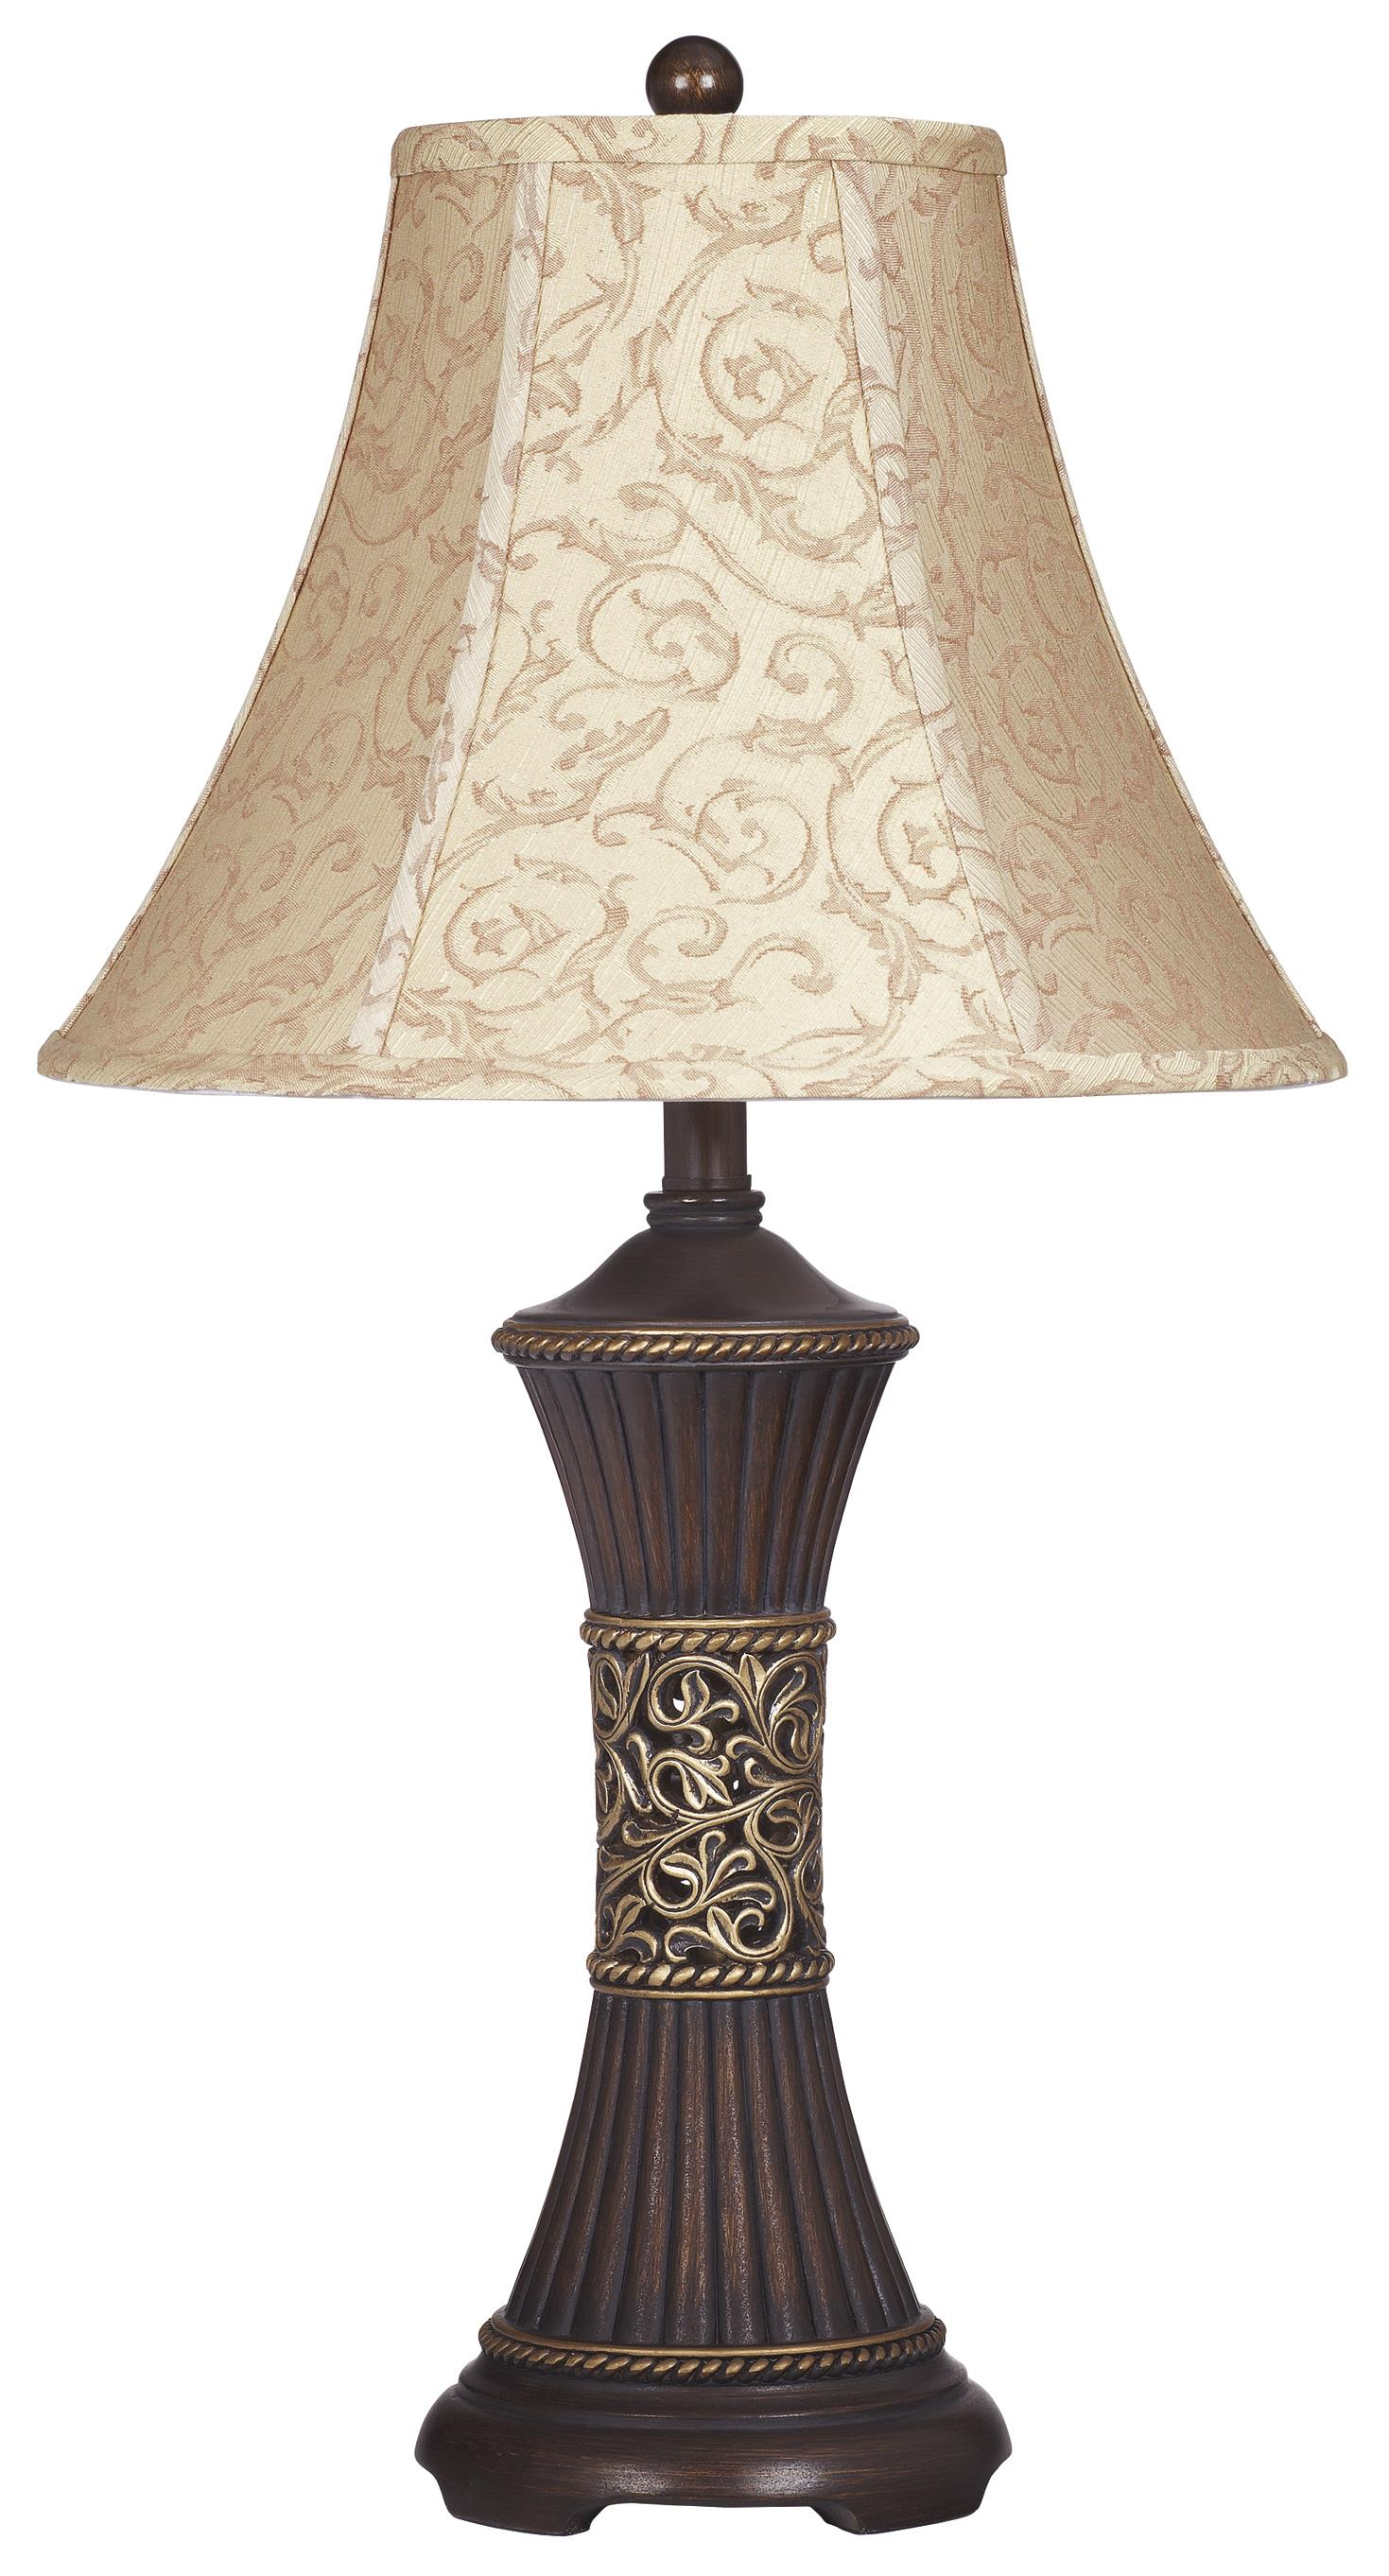 Signature Design by Ashley Lamps - Traditional Classics Set of 2 Mariana Table Lamps - Item Number: L372944